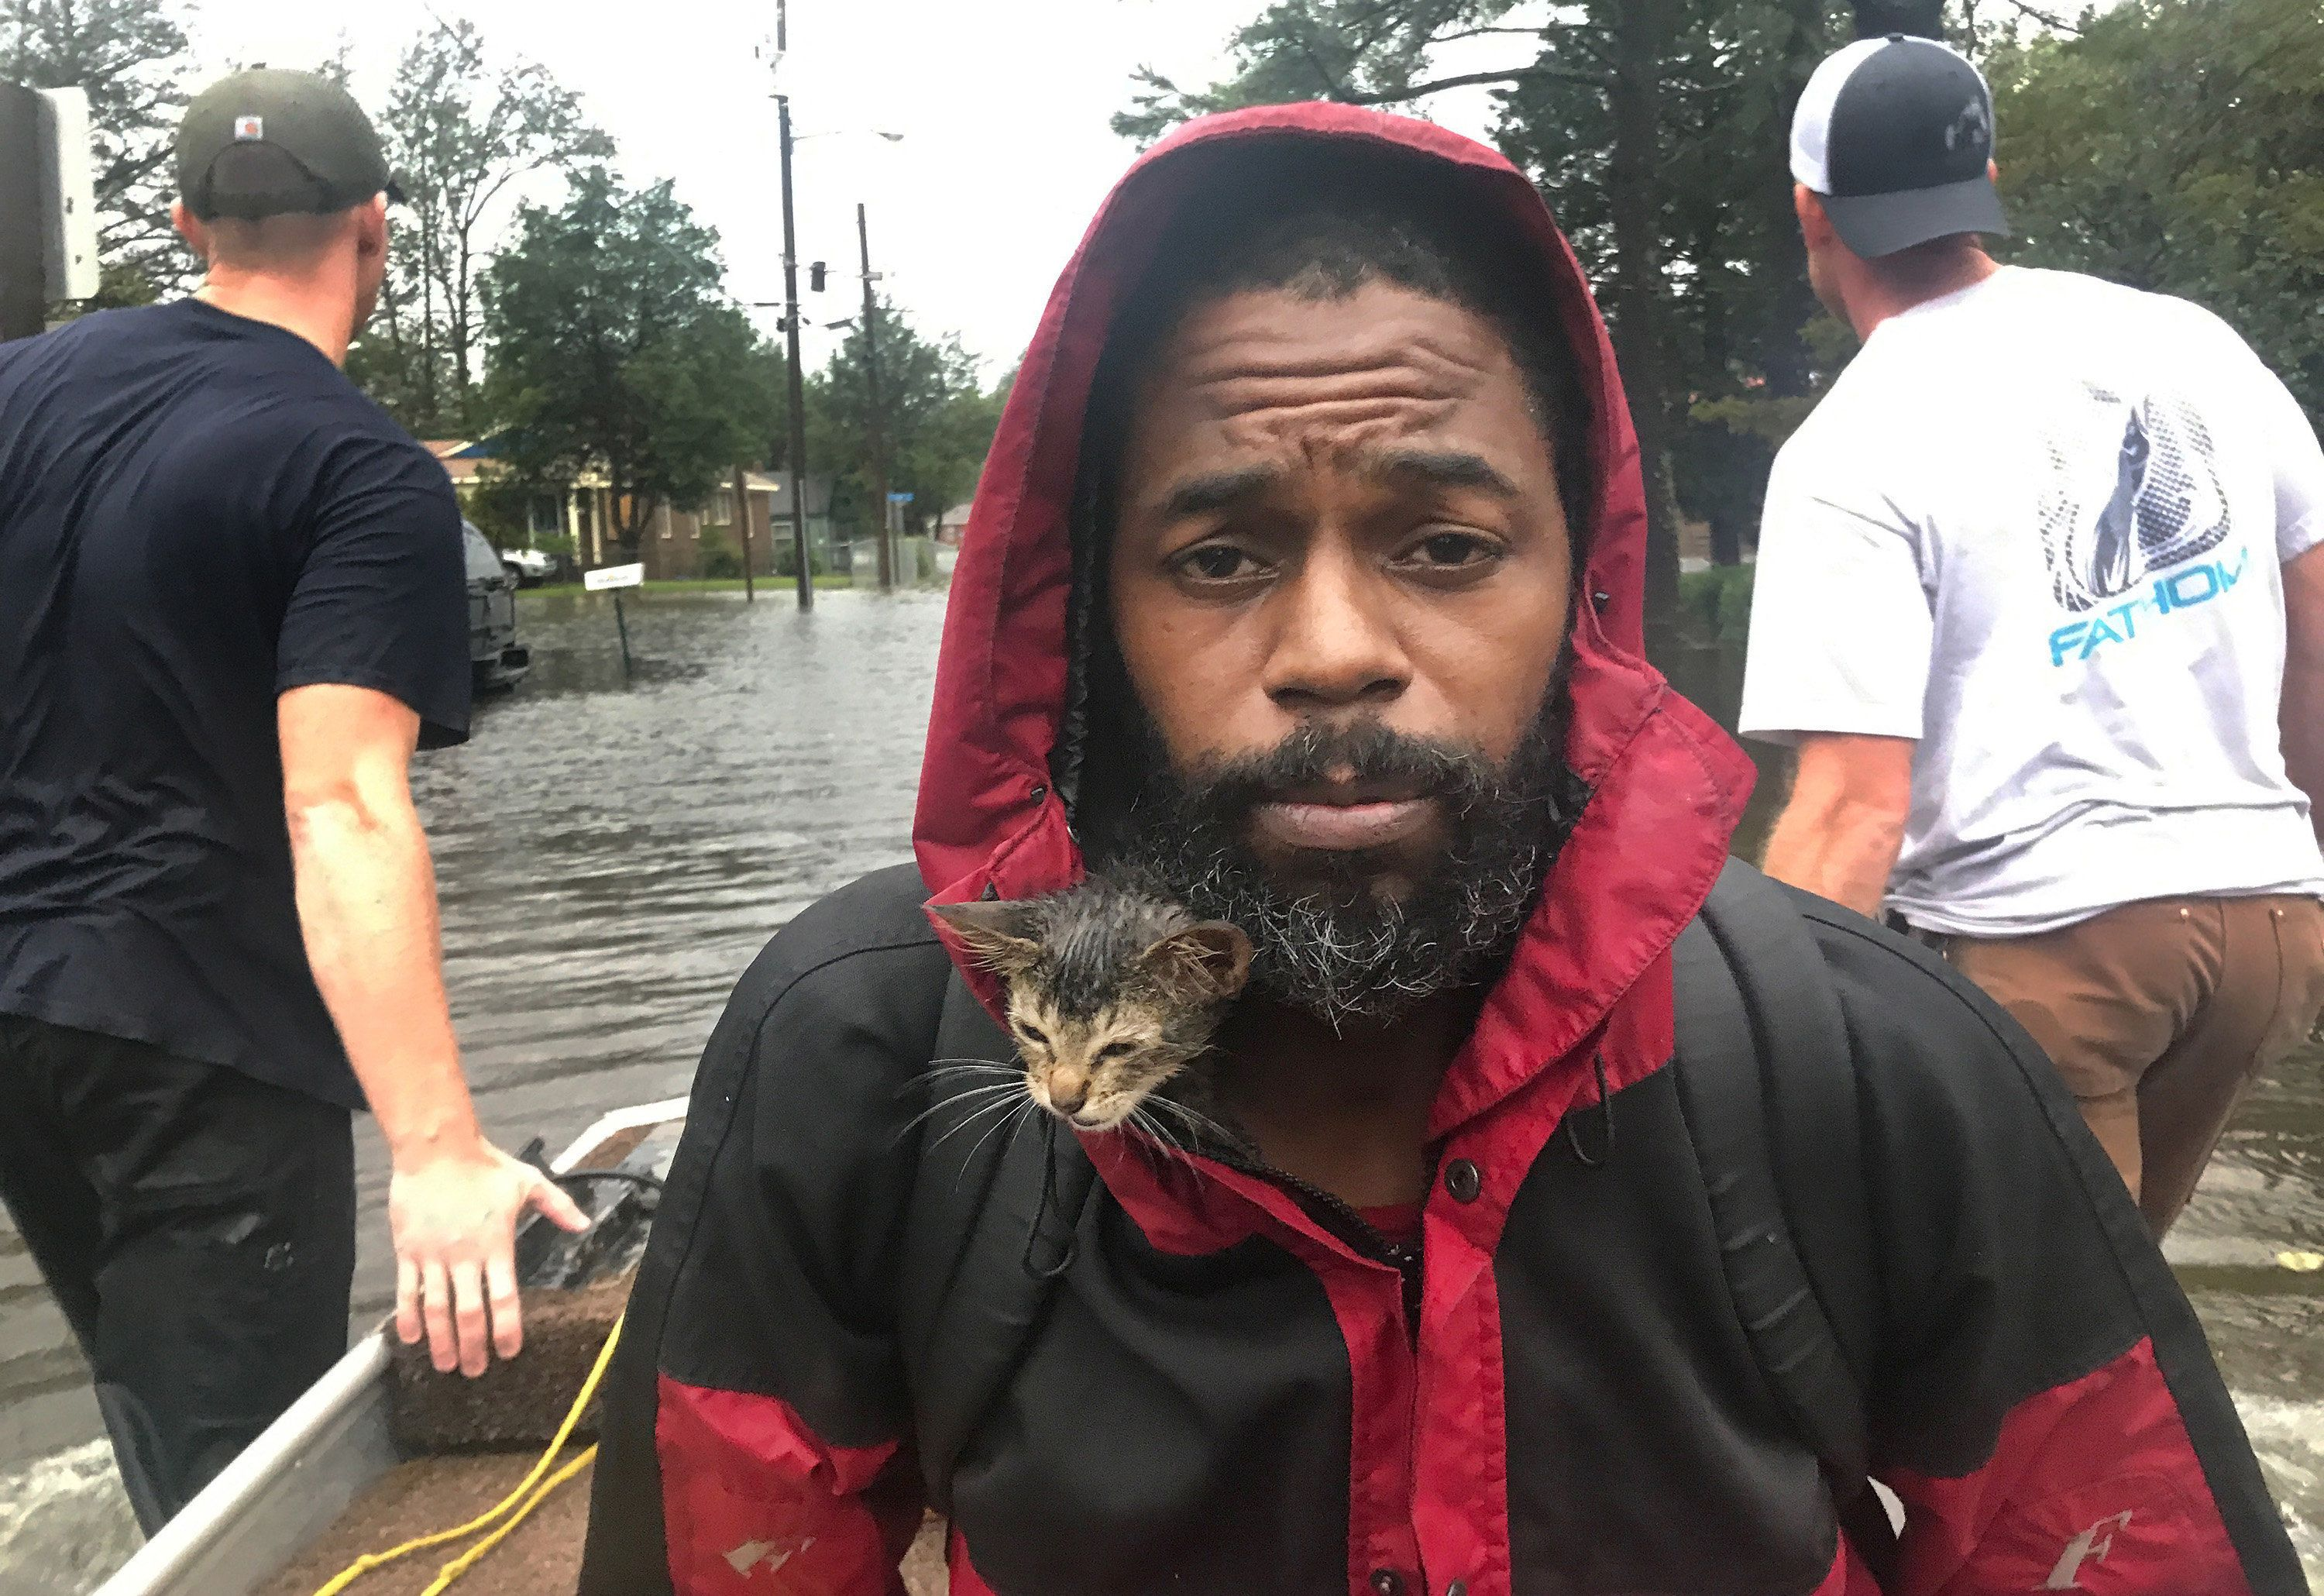 Kitten named Survivor clings to owner amid Florence flood rescue